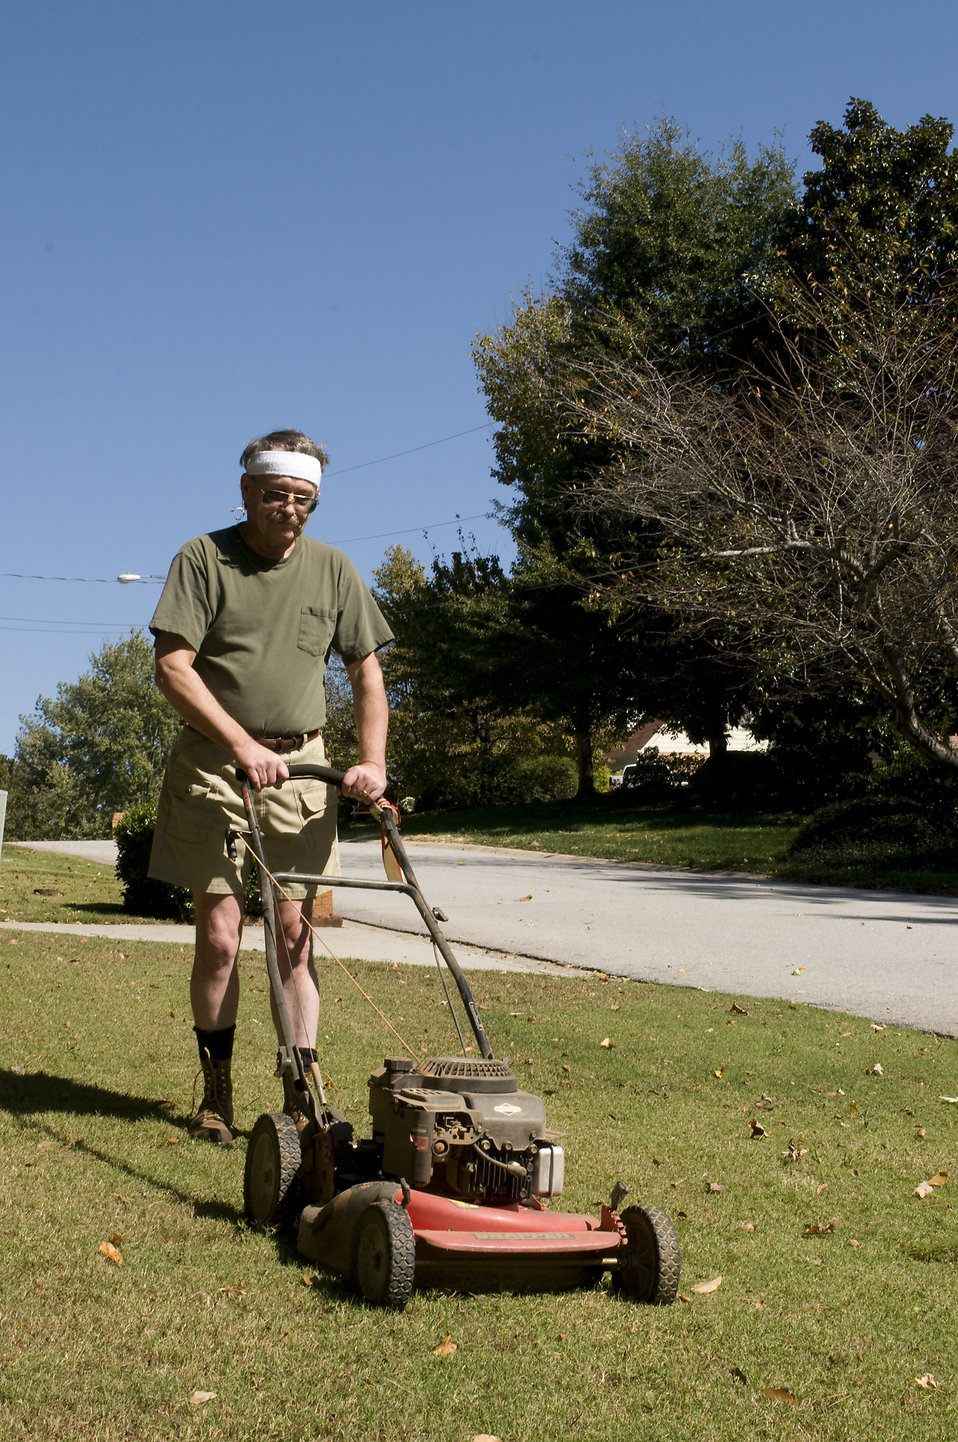 A man mowing a lawn : Free Stock Photo